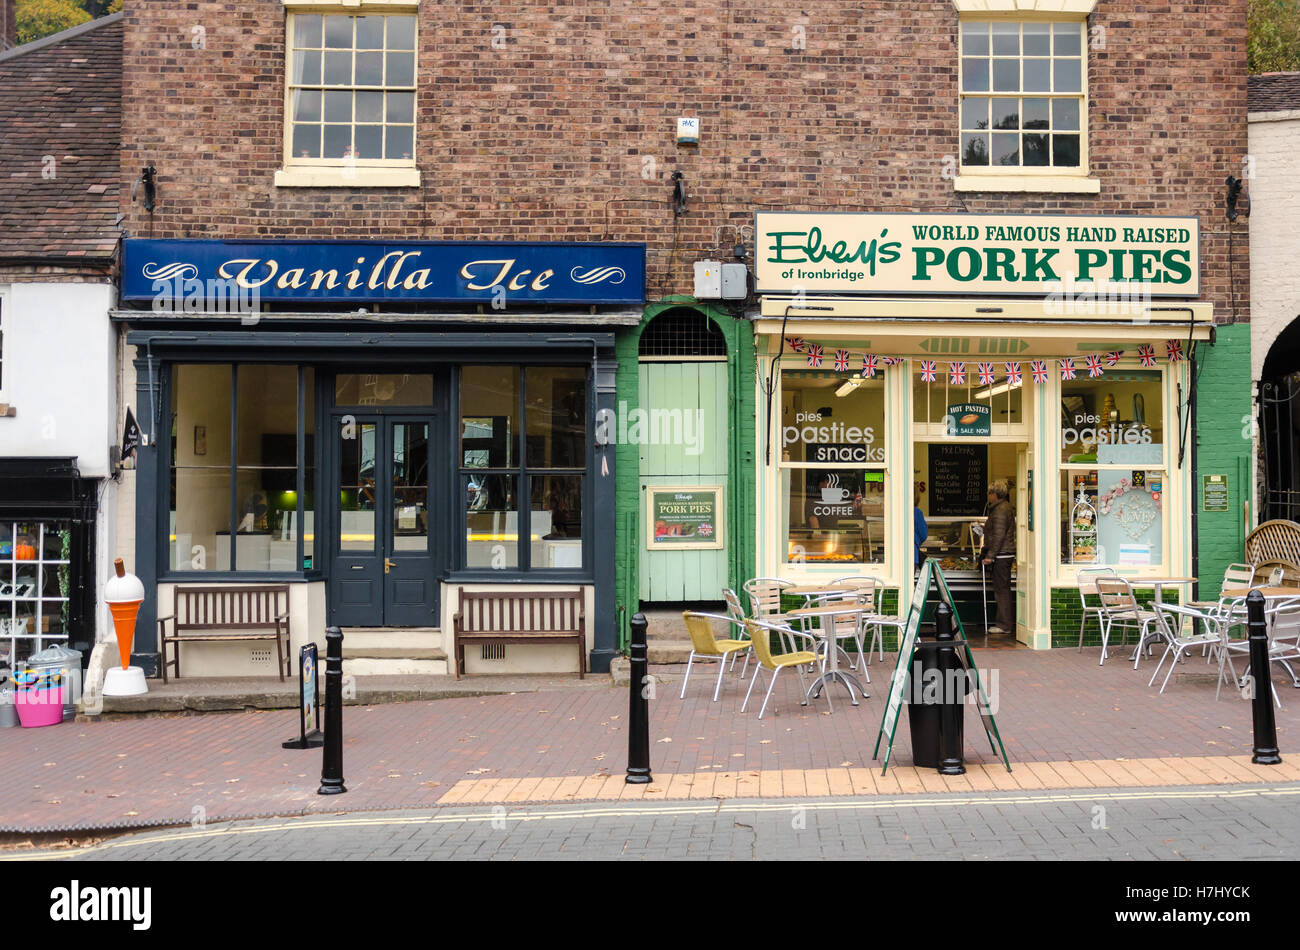 Shop fronts in Ironbridge, Shropshire, UK - Stock Image